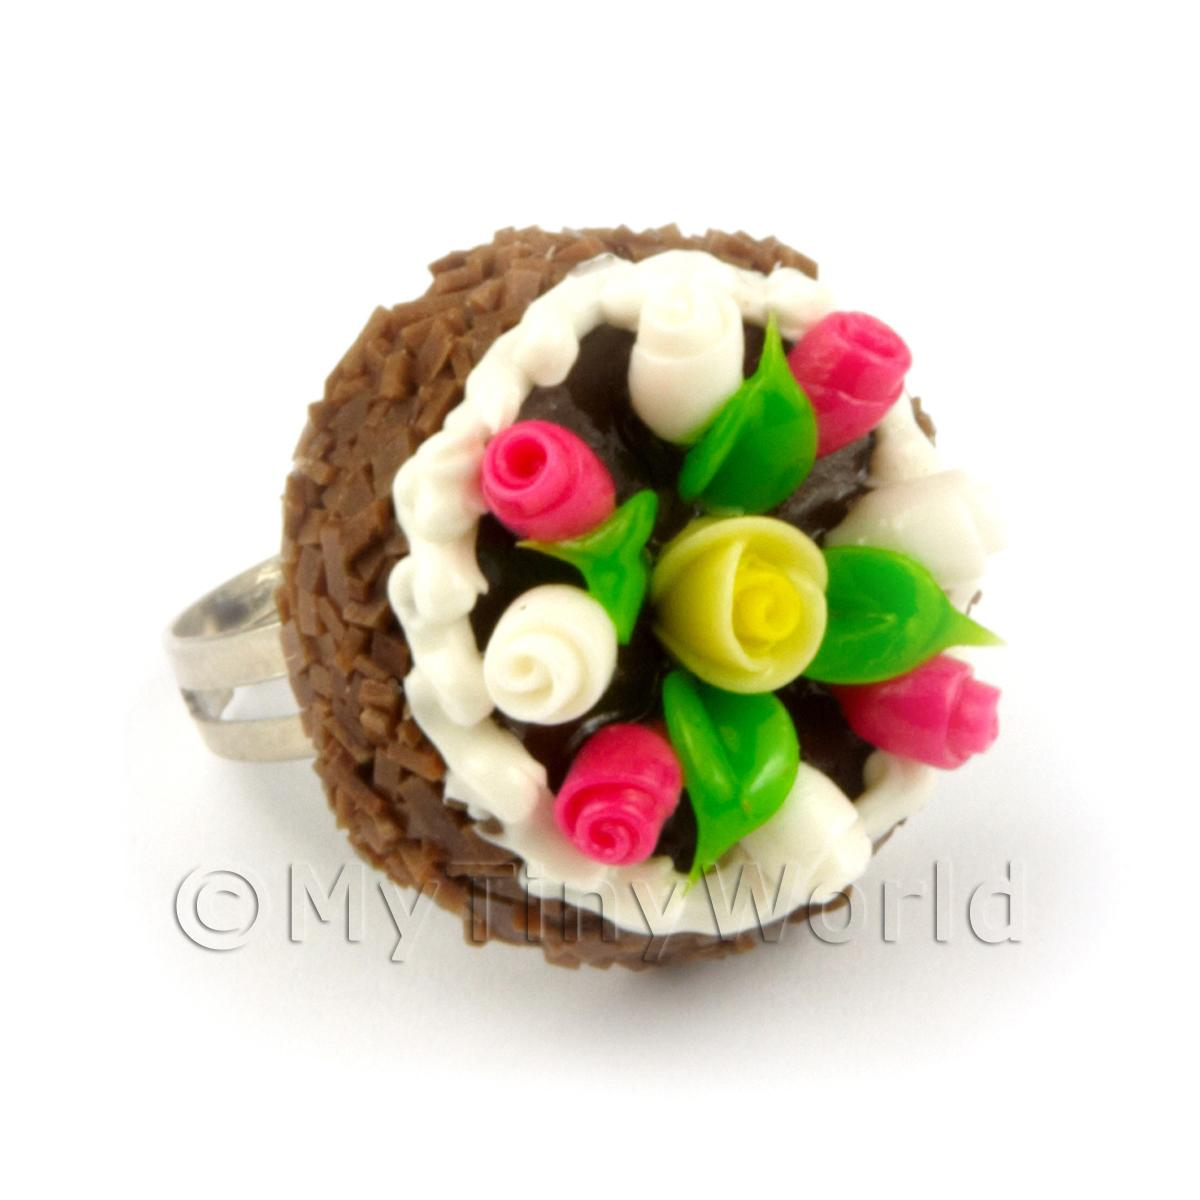 Dolls House Handmade Adjustable Chocolate Cake Ring